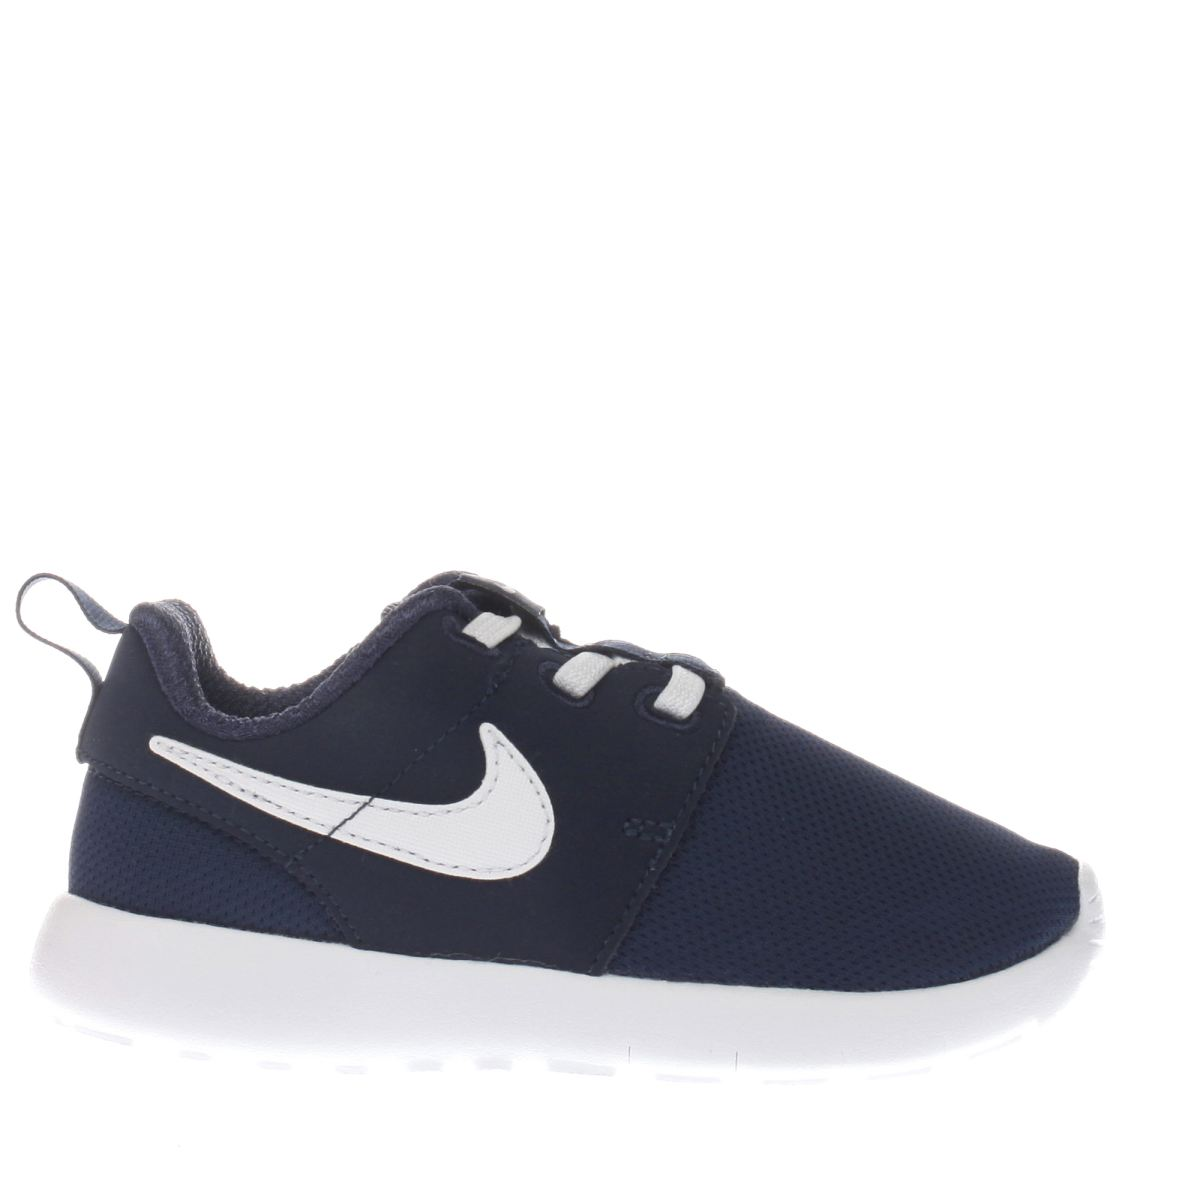 nike navy & white roshe one Boys Toddler Trainers